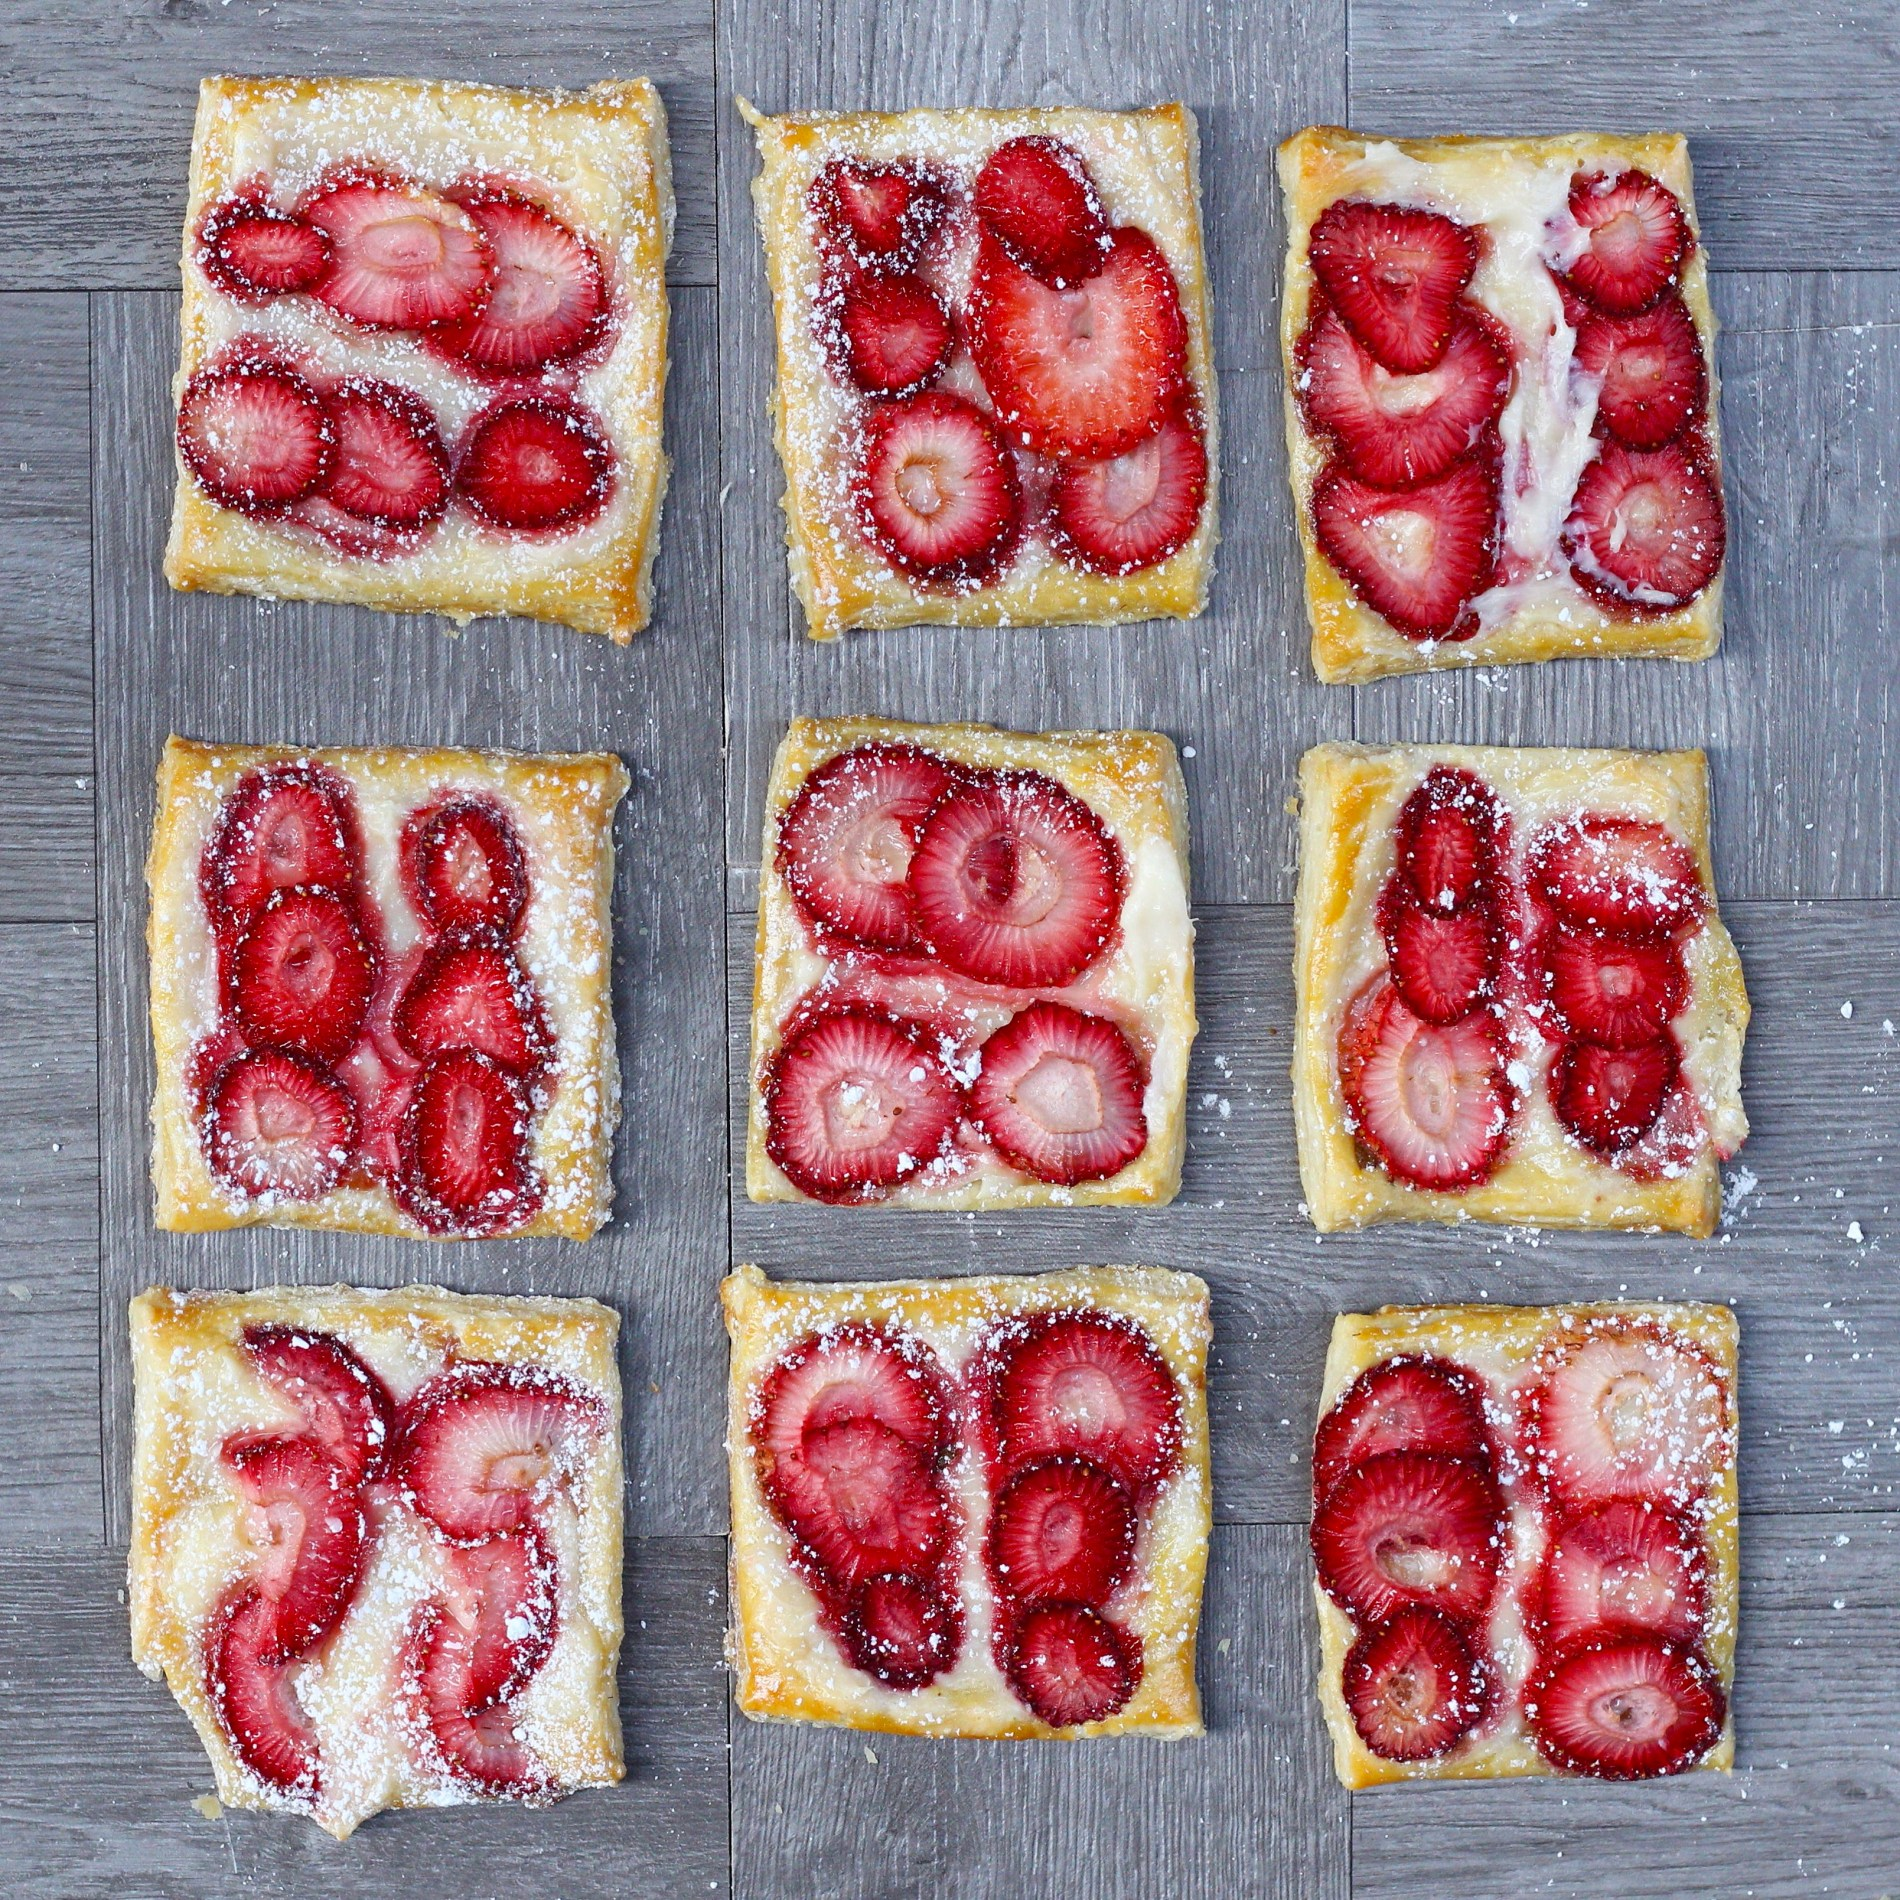 These strawberry cream cheese tarts are perfect for when you're craving something sweet and delicious. They are super easy to prepare, and are a beautiful to share with your guests.